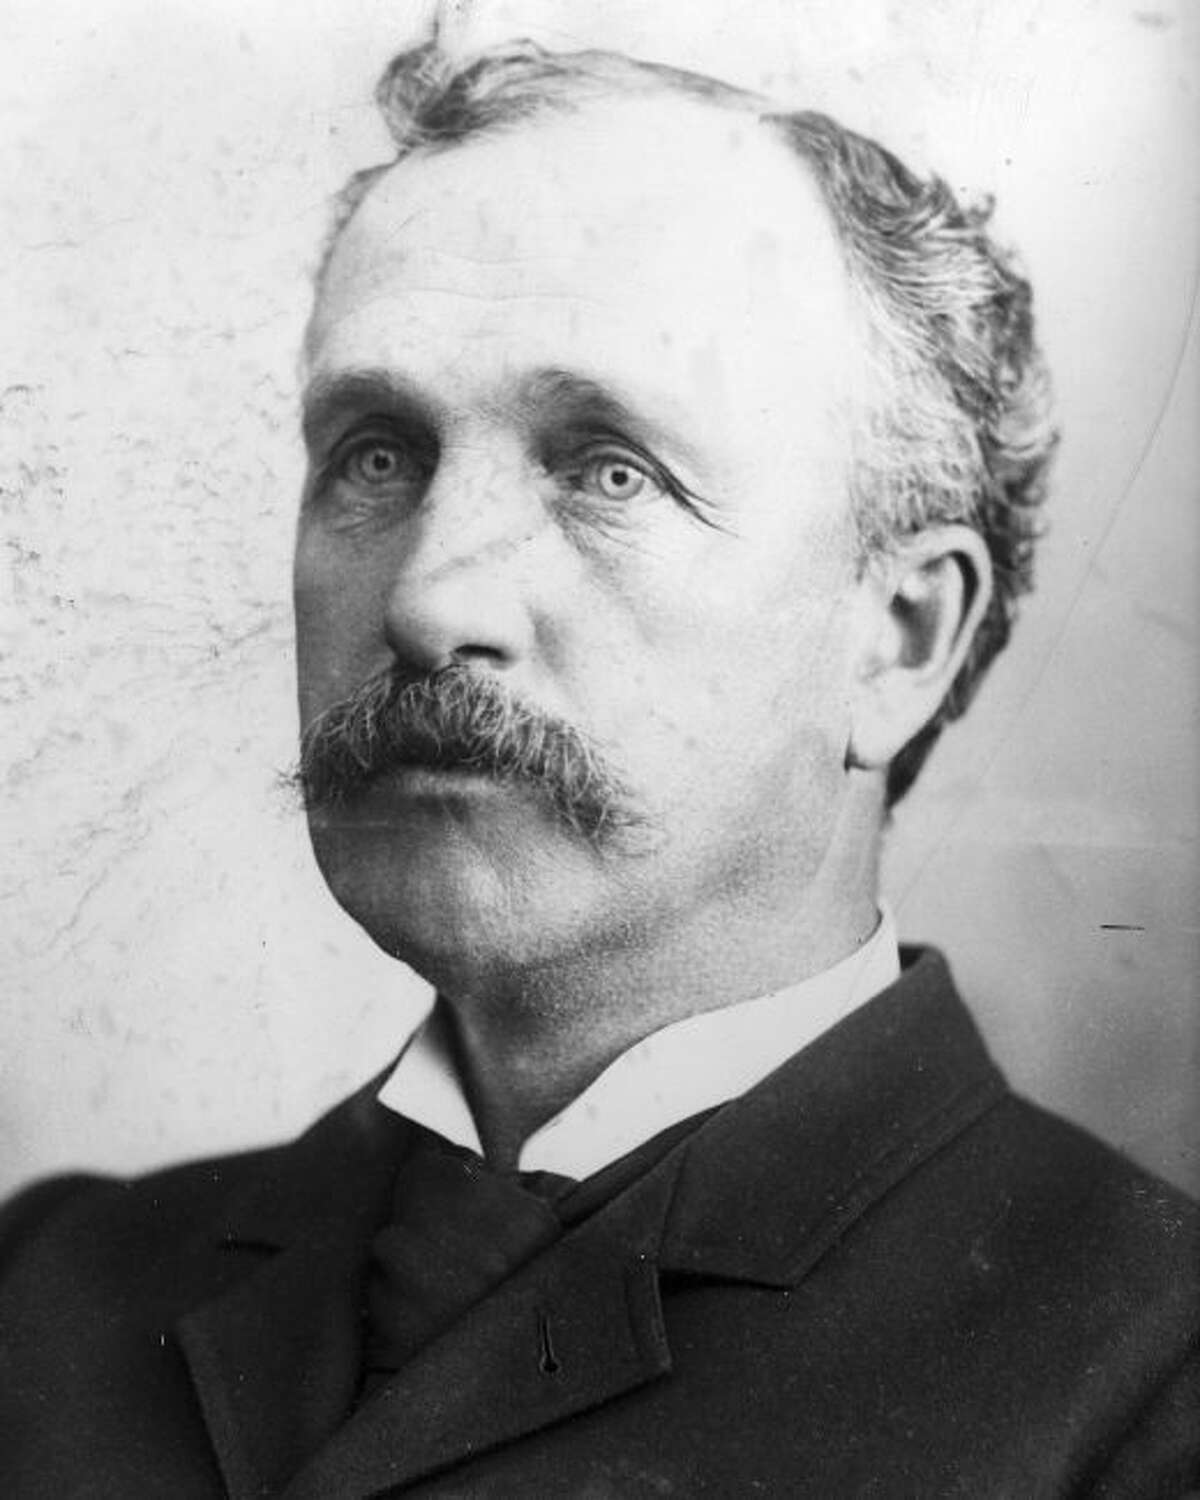 Judge A.V. McAlvay presided over the matter of dissolving the injunction suit that had delayed the paving of a large stretch of city streets in 1902.